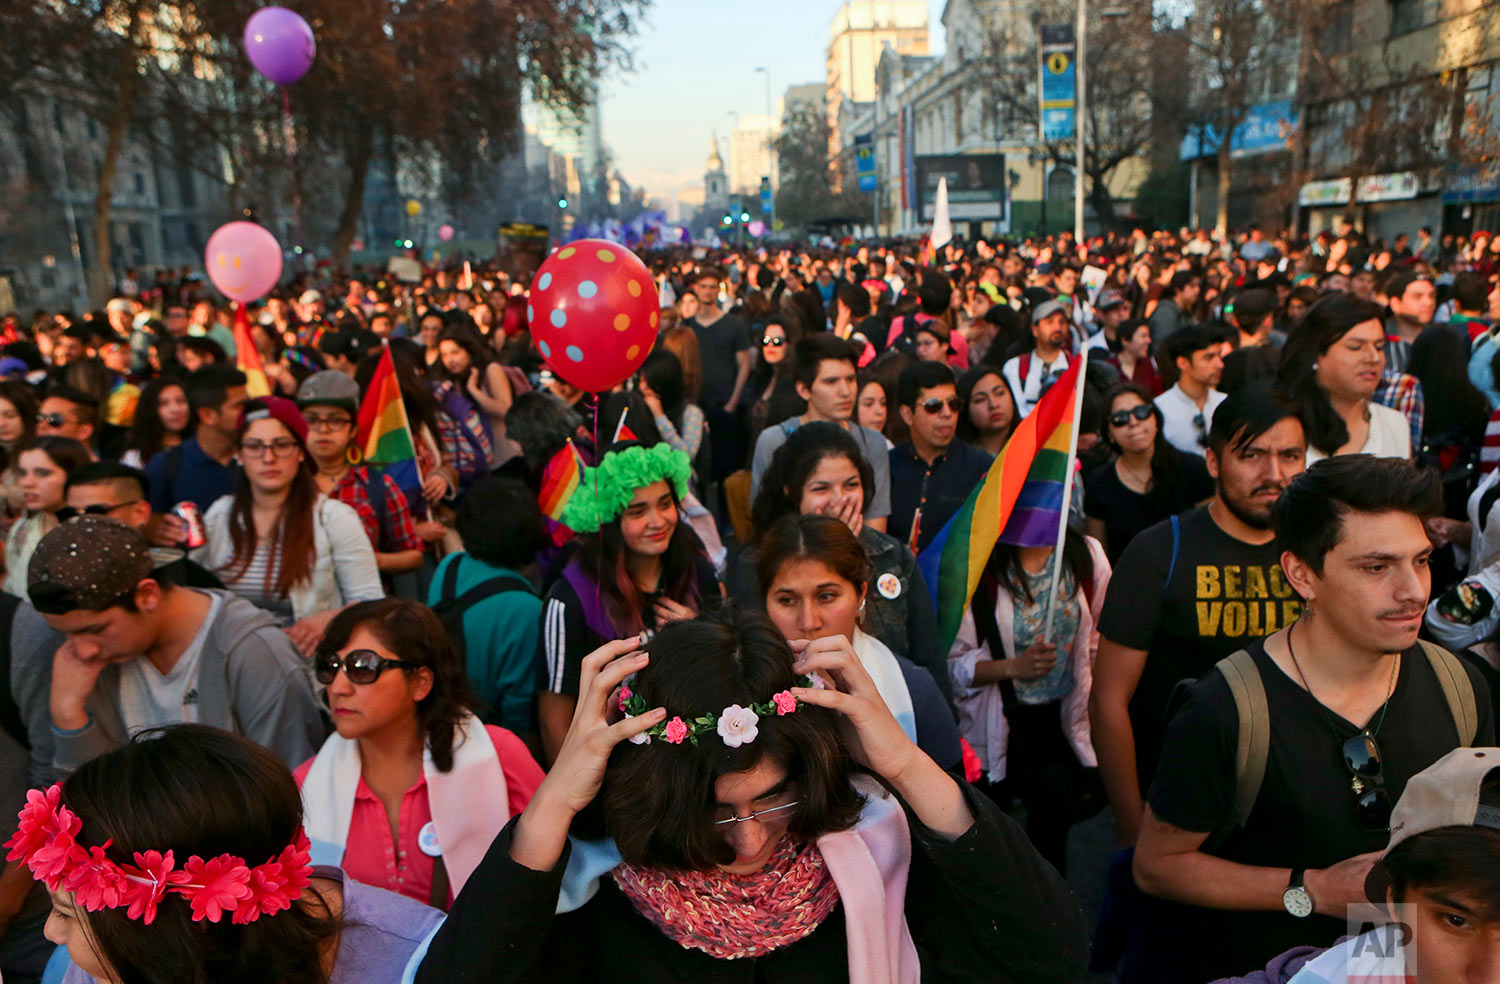 In this July 1, 2017 photo, Angela, below center, places a crown of flowers on her head as she attends a Gay Pride march alongside other transgender children in Santiago, Chile. The transgender children at the parade had socially transitioned to their chosen gender with the backing of their families. (AP Photo/Esteban Felix)